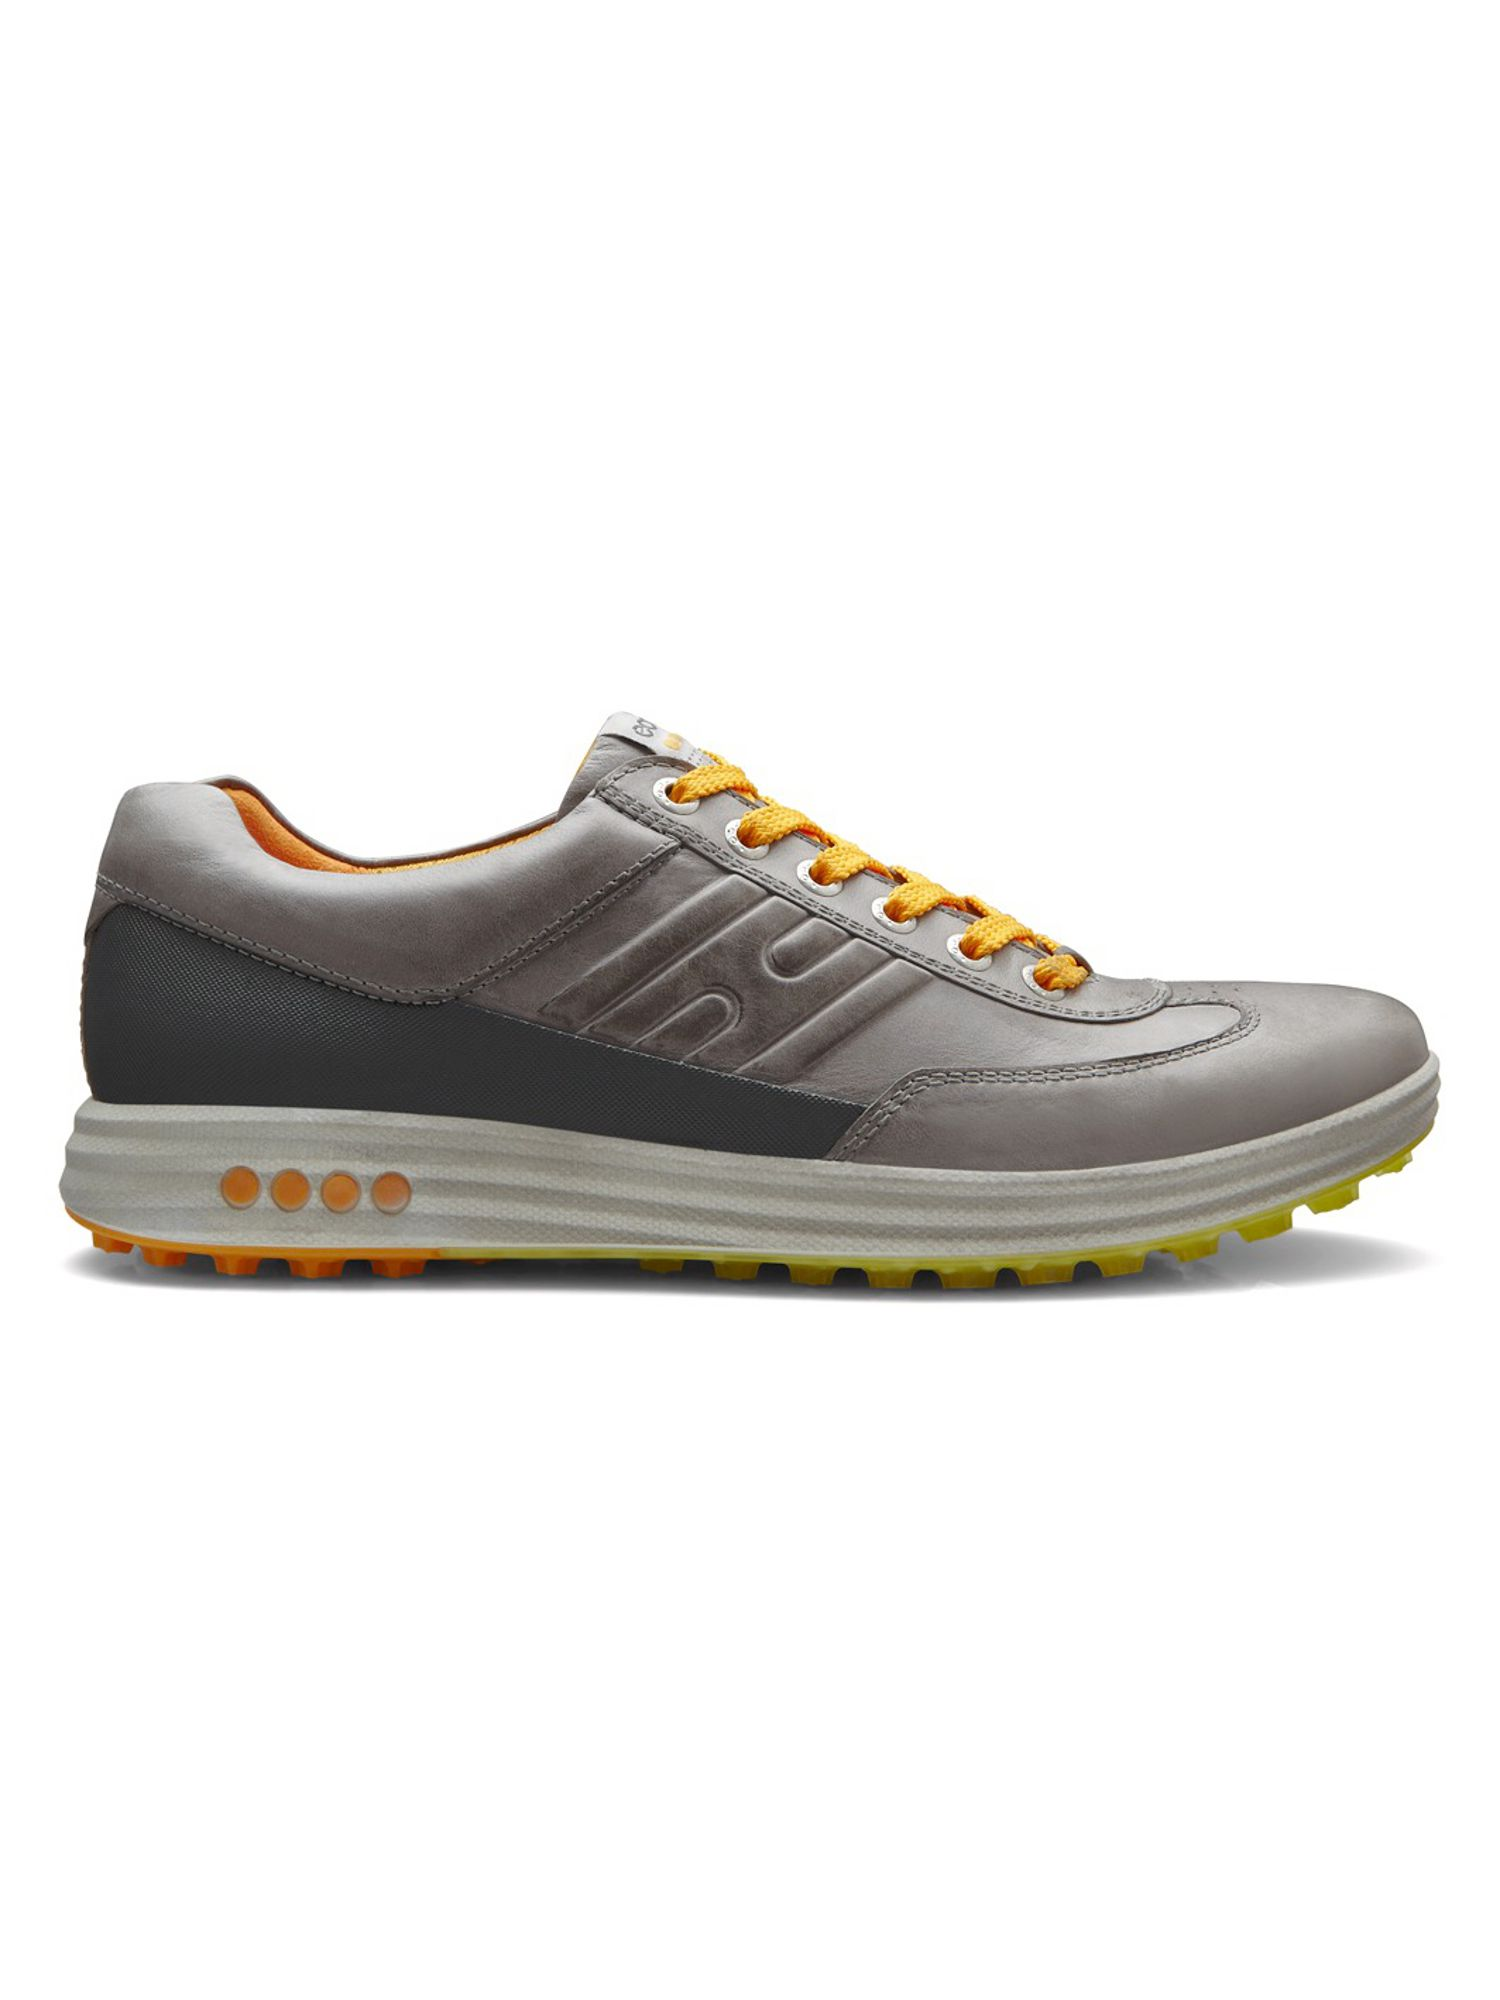 Street evo one golf shoes